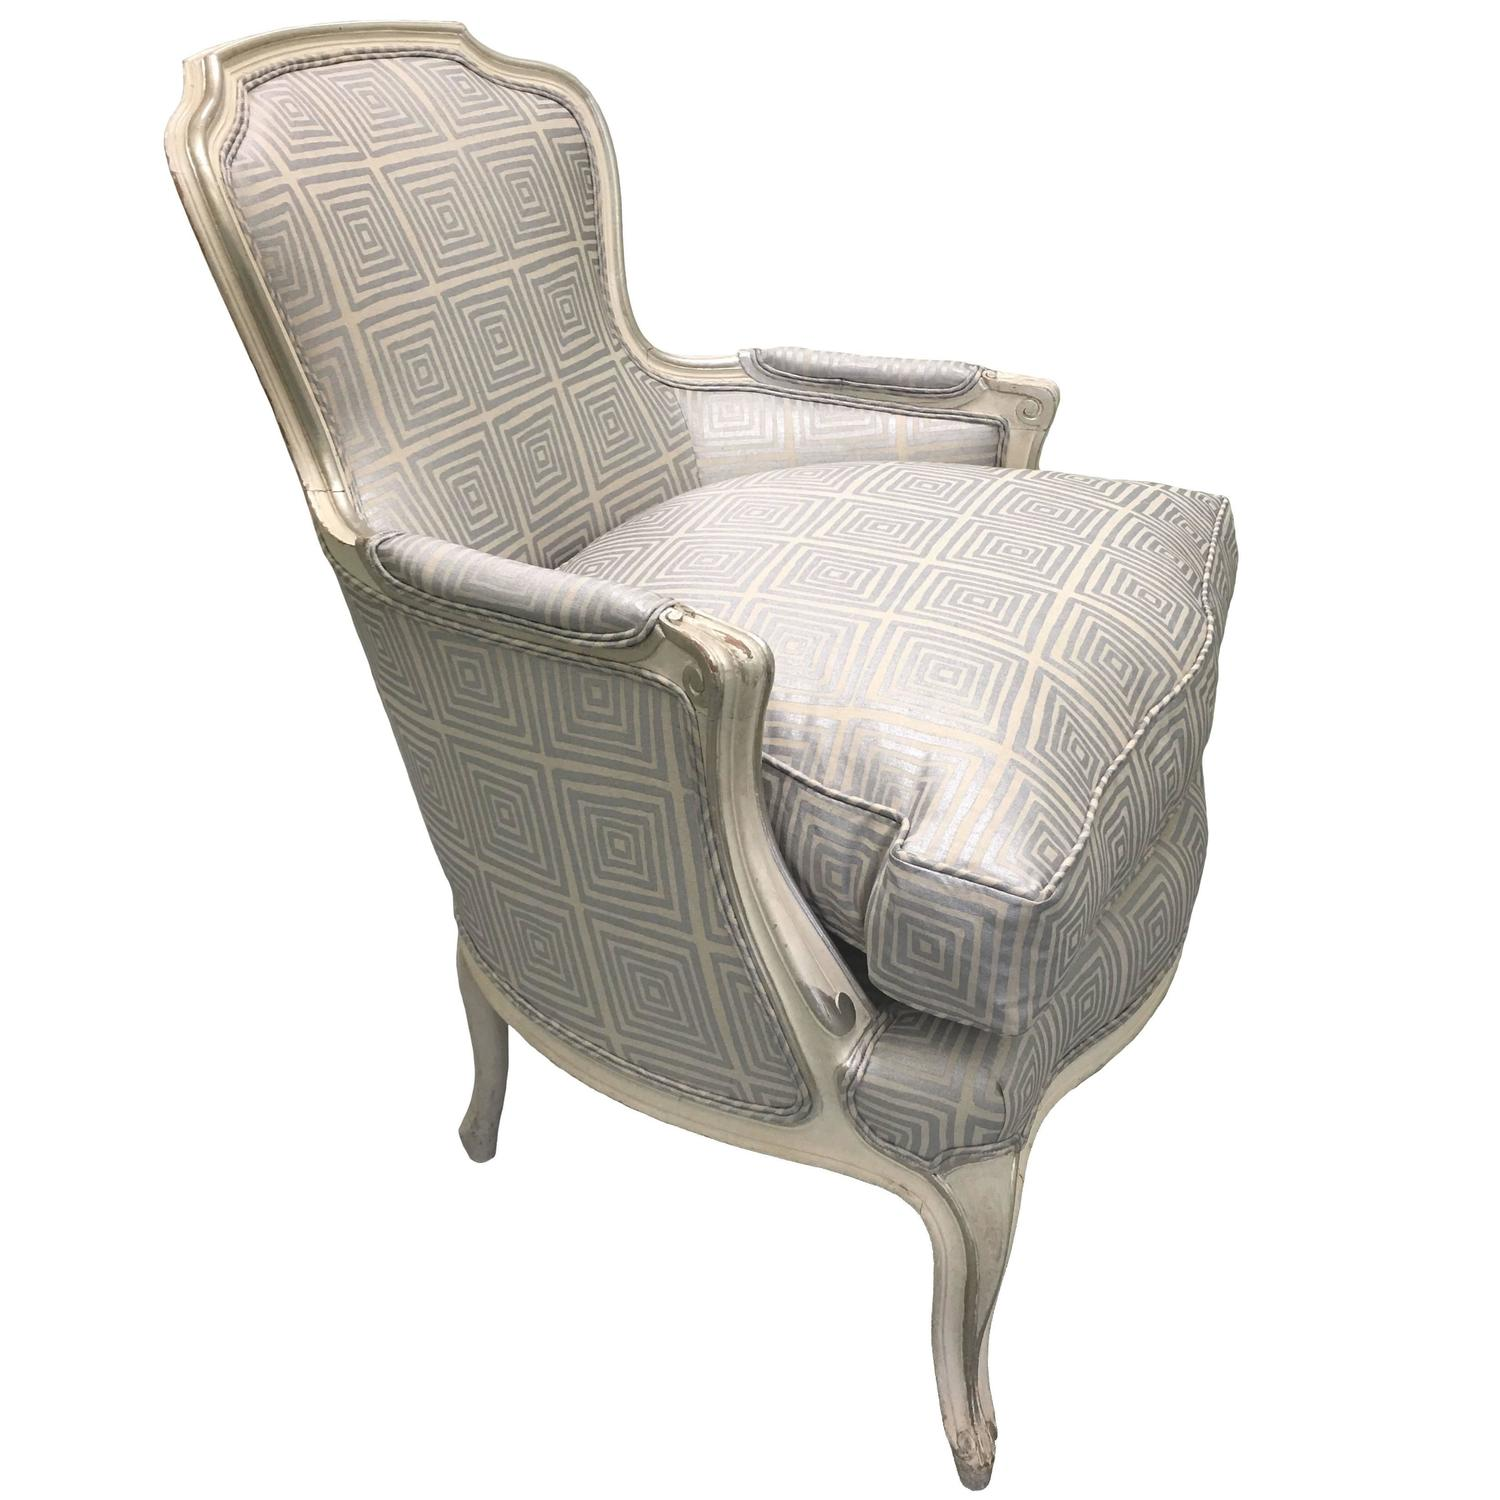 Bergere chair french rococo - Bergere Chair French Rococo